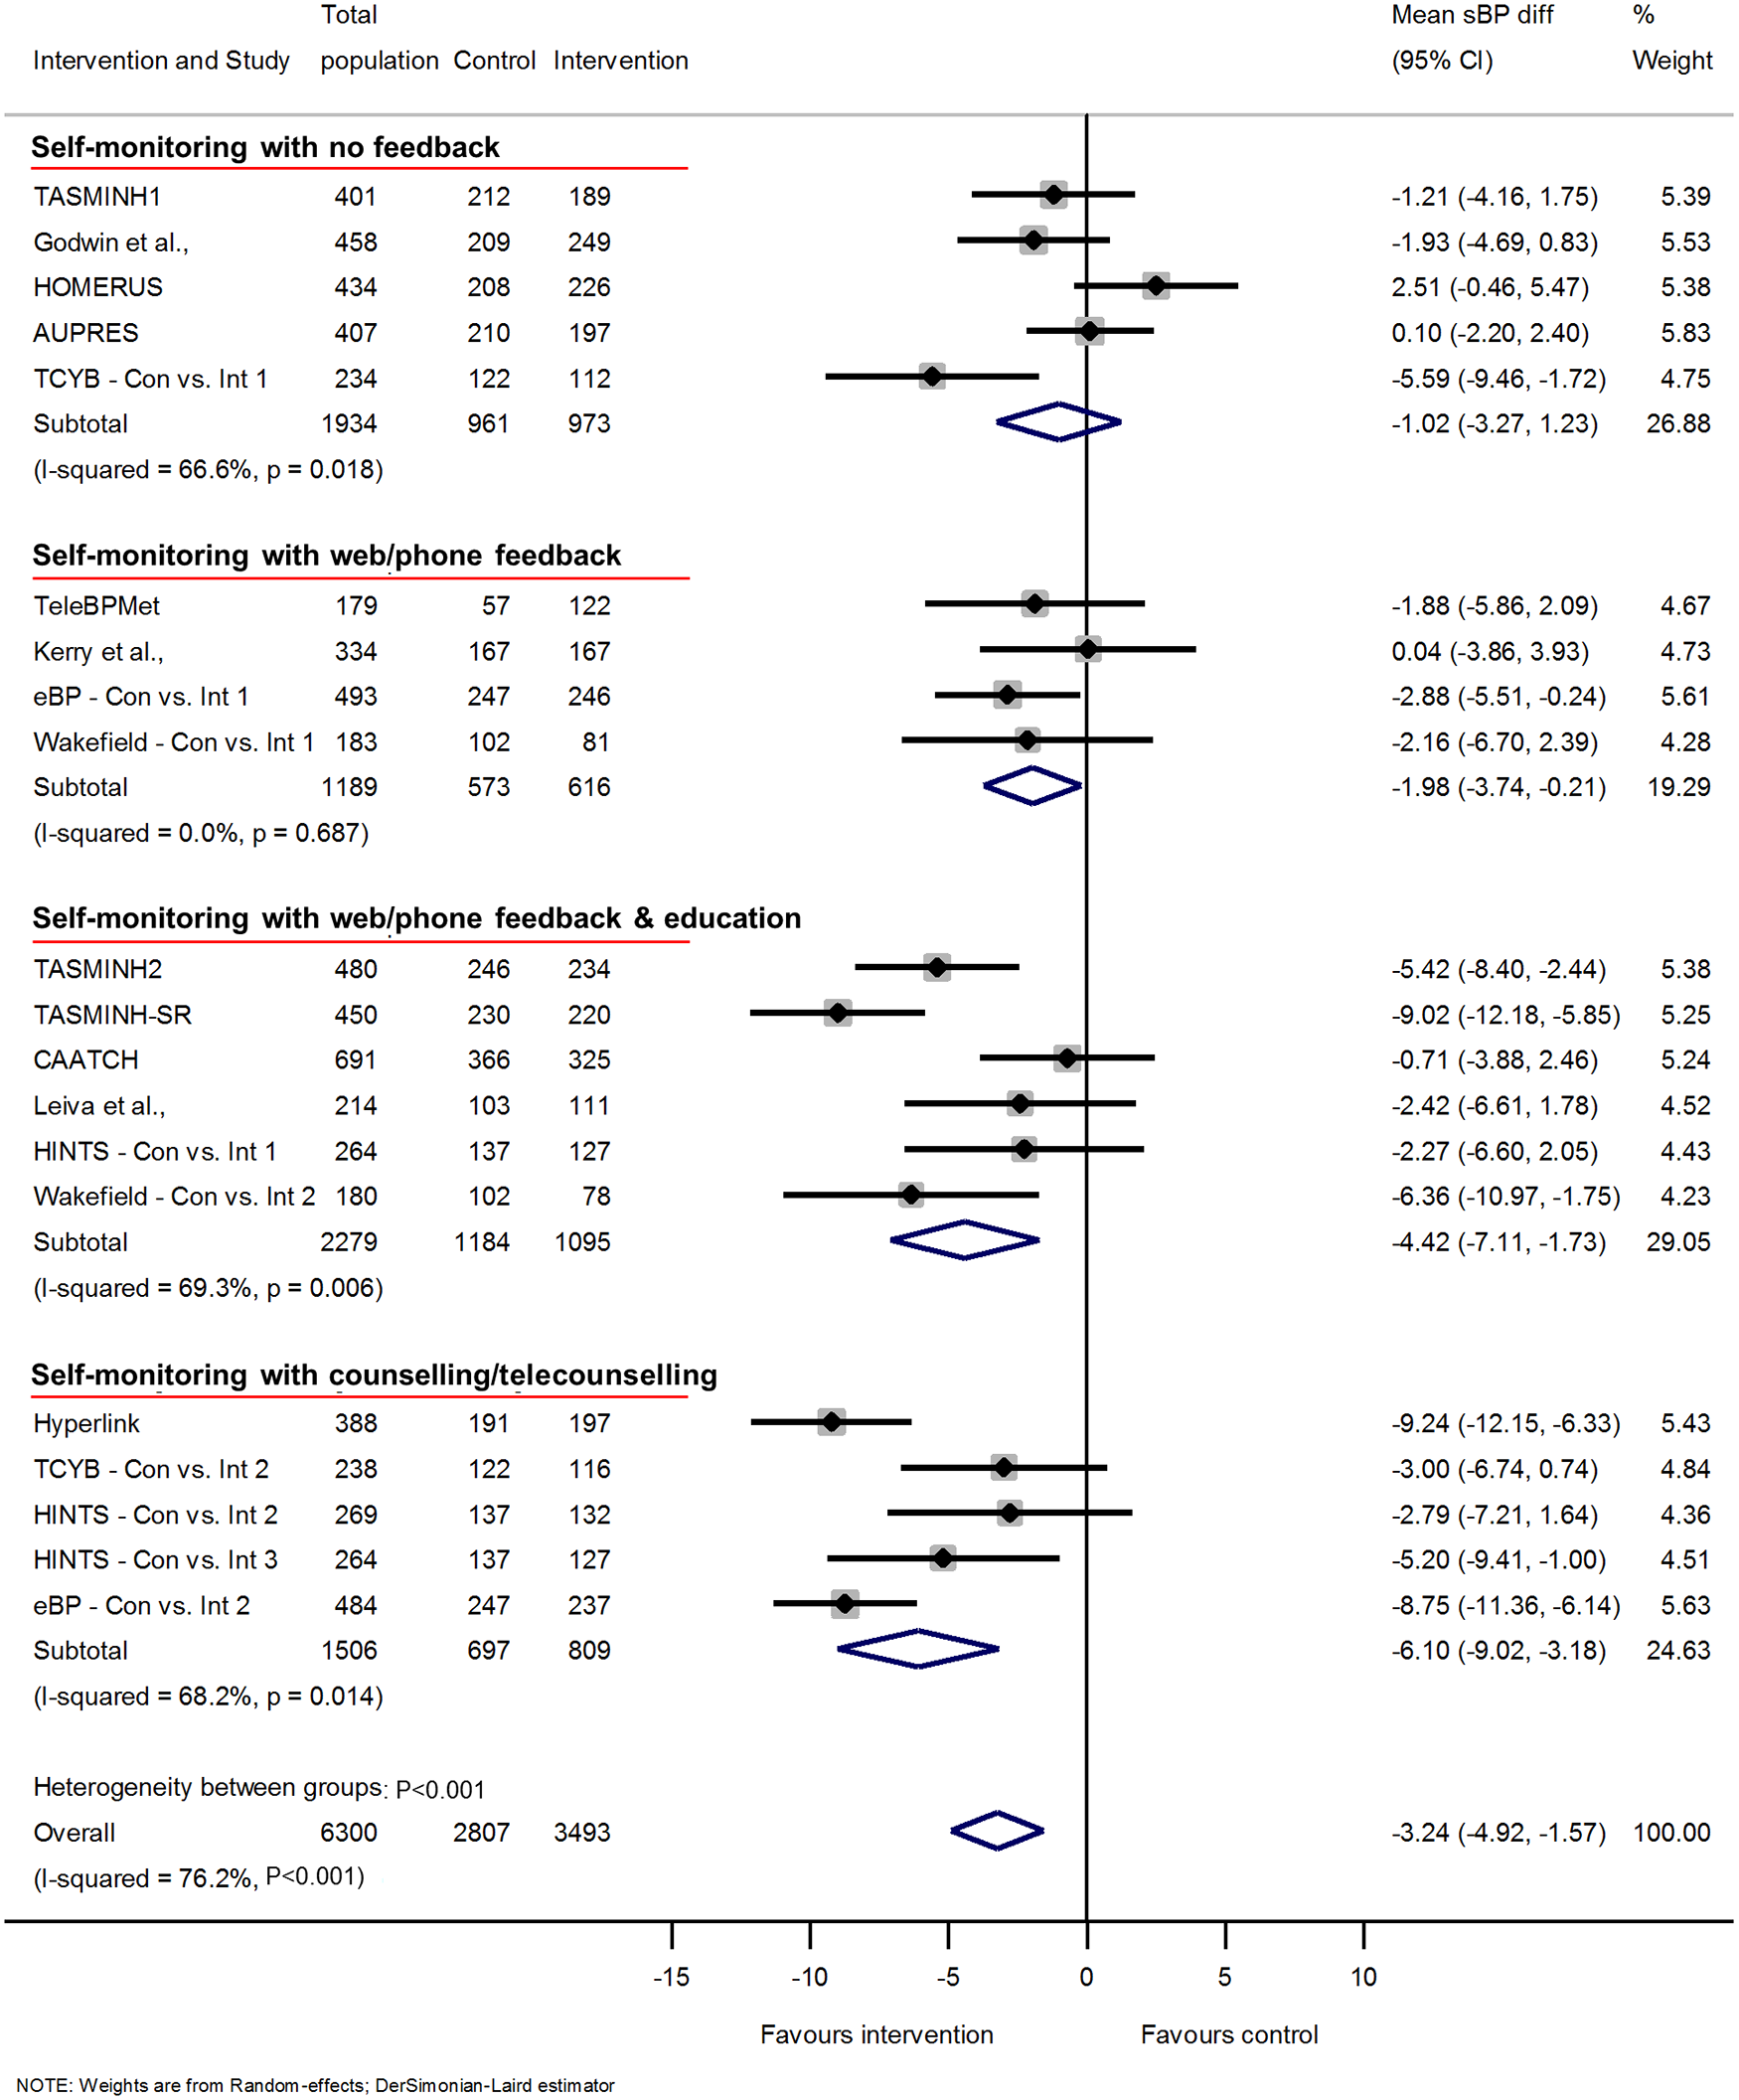 Impact of self-monitoring of BP on clinic sBP according to level of co-intervention support at 12 months (15 studies).